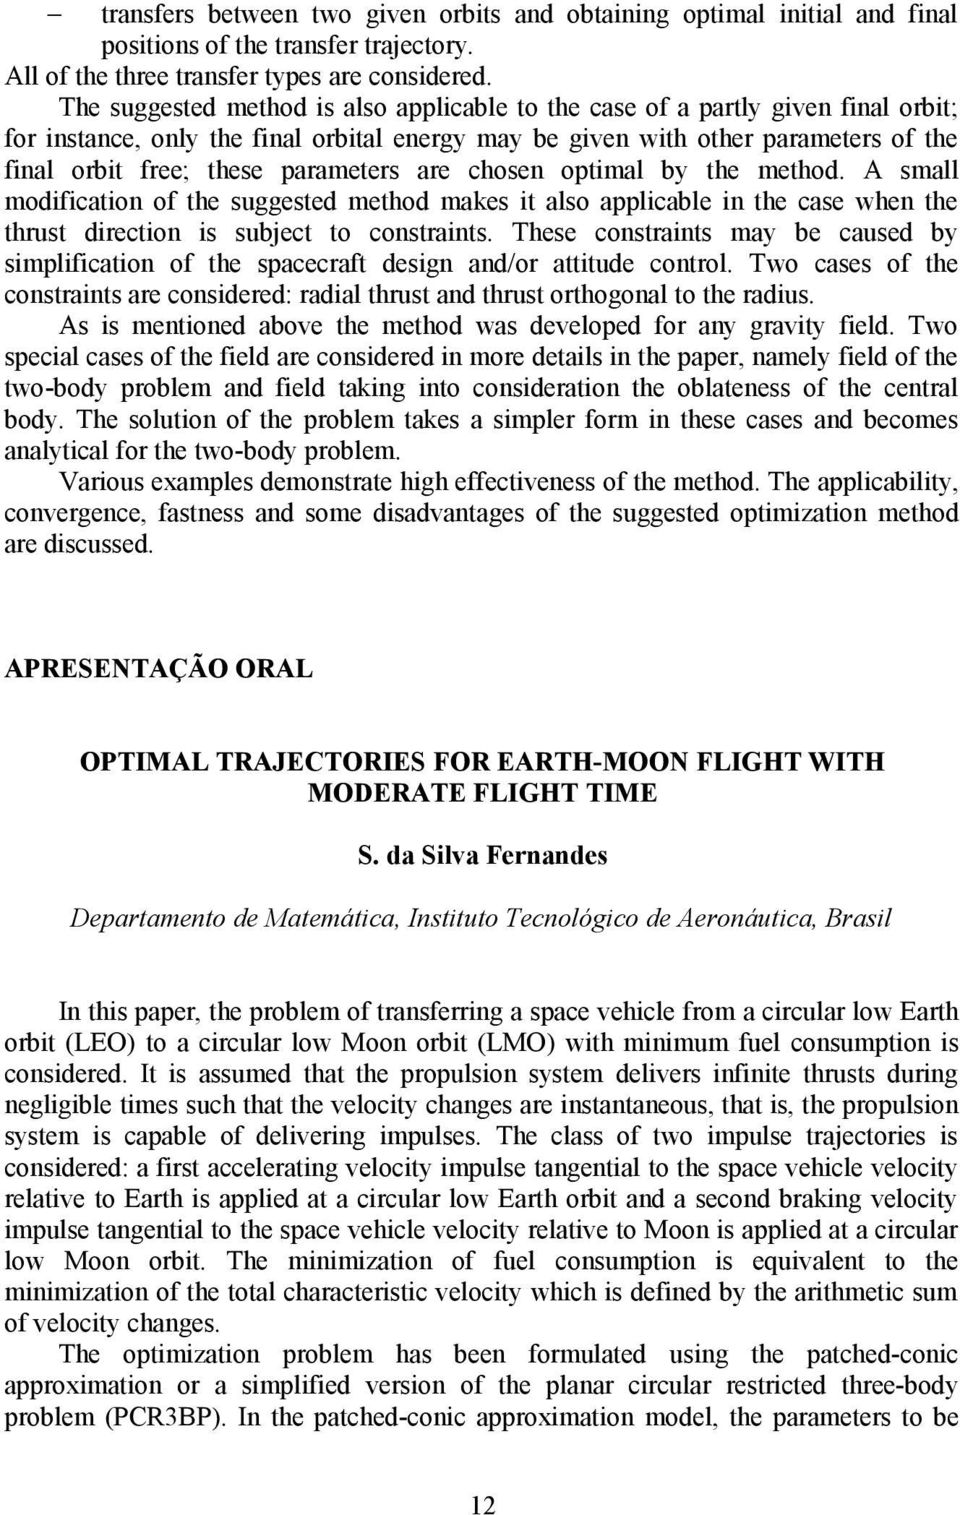 parameters are chosen optimal by the method. A small modification of the suggested method makes it also applicable in the case when the thrust direction is subject to constraints.